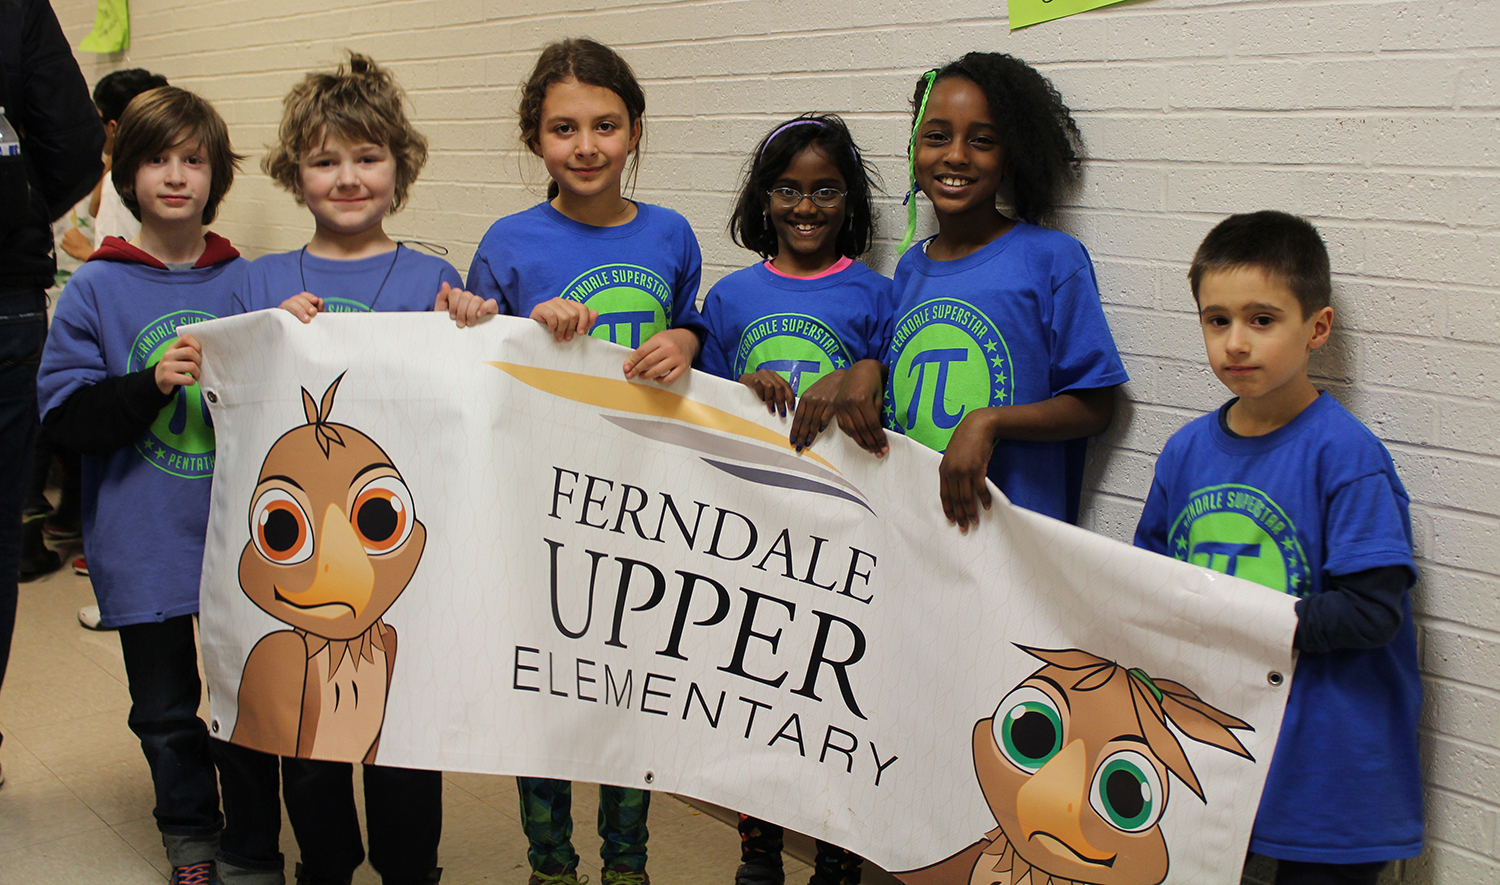 Elementary math pentathletes showing Ferndale Eagle pride with their school sign!